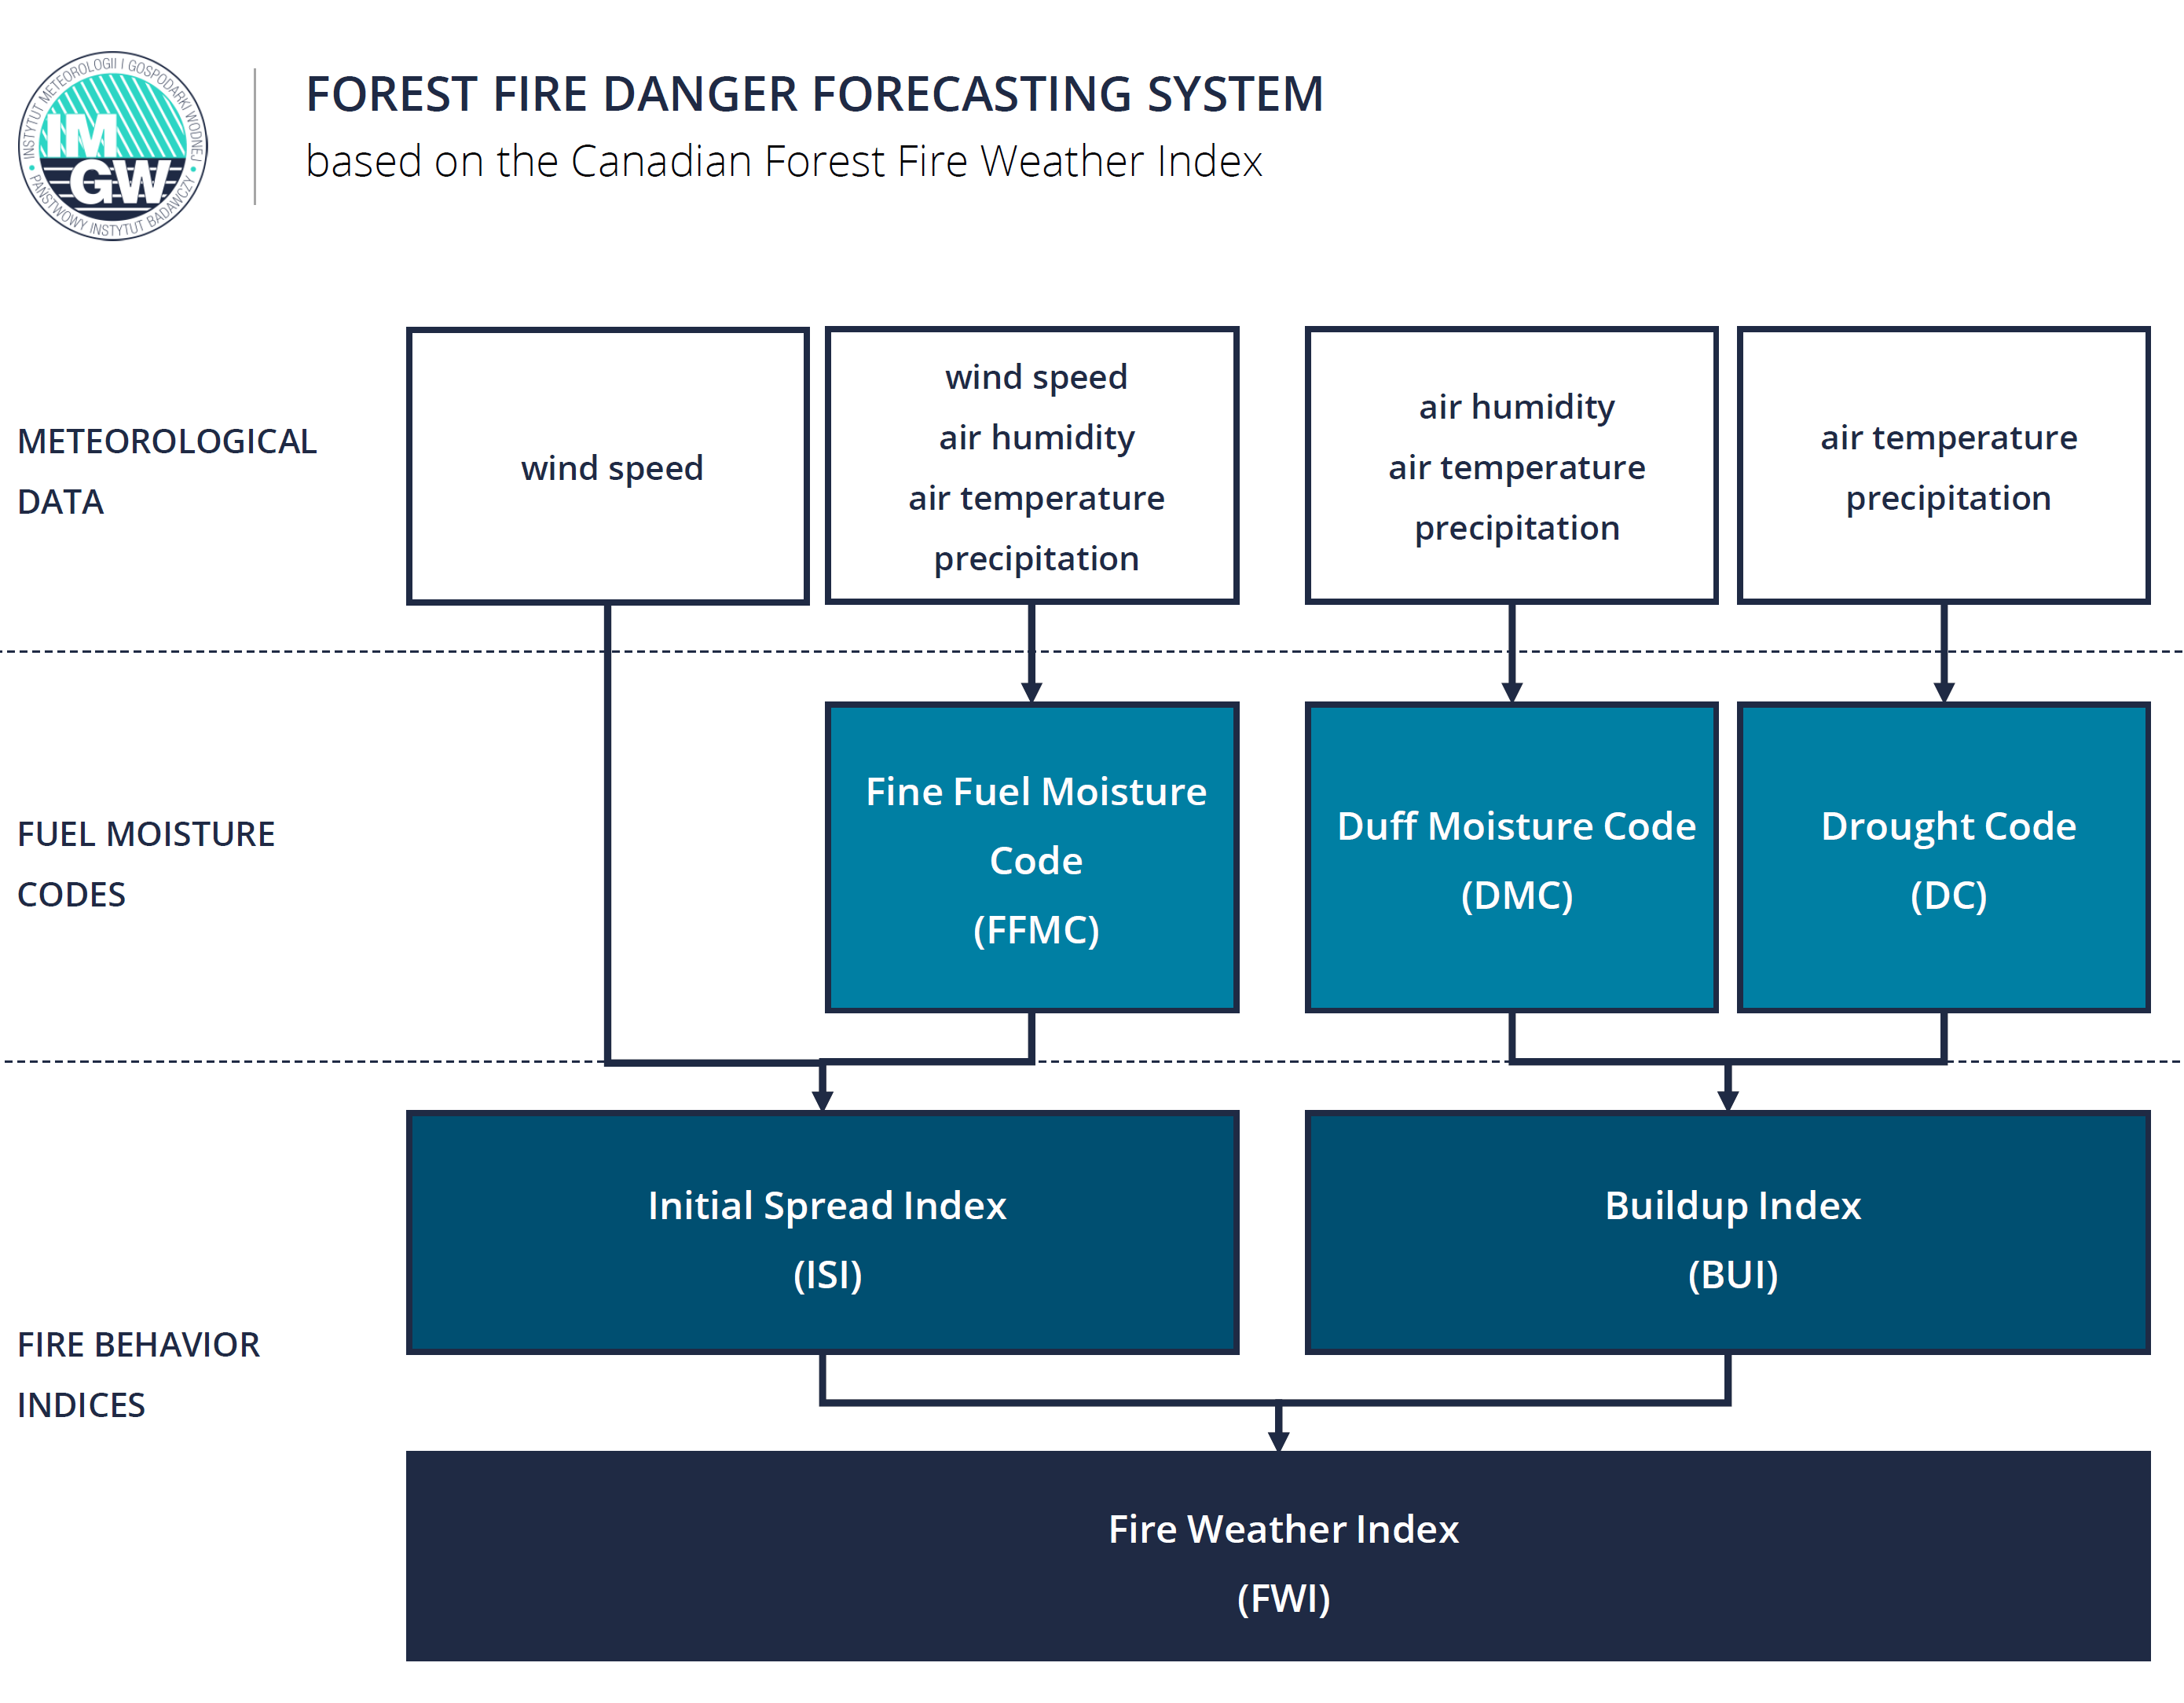 Diagram of the forest fire danger forecasting system IMGW-PIB (based on the Canadian Forest Fire Weather Index).